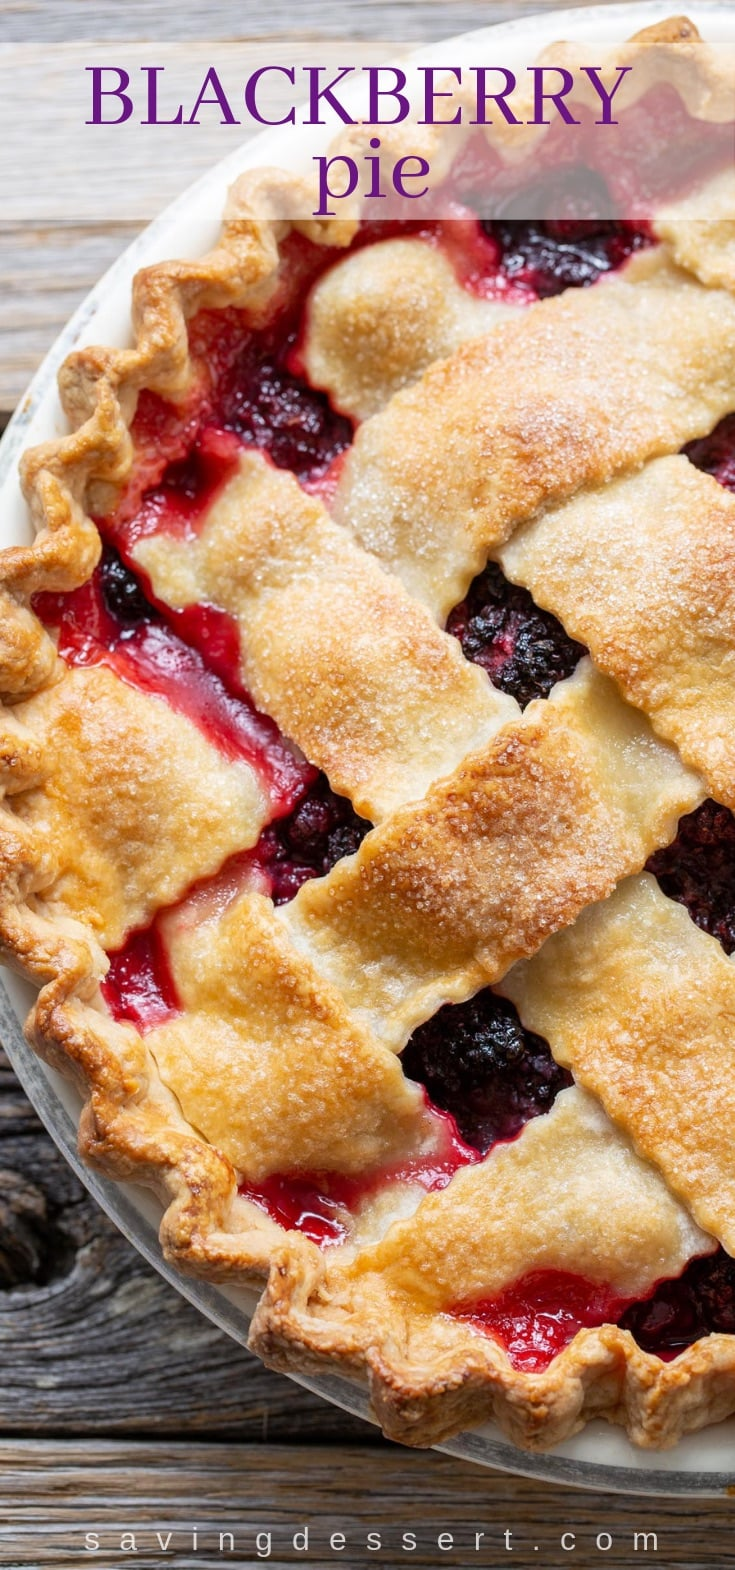 Homemade Blackberry Pie with a buttery, flaky crust and loaded with fresh juicy berries. Nothing says home like a hand crafted pie. #homemadepie #pie #blackberrypie #summerpie #fruitpie #blackberries #blackberry